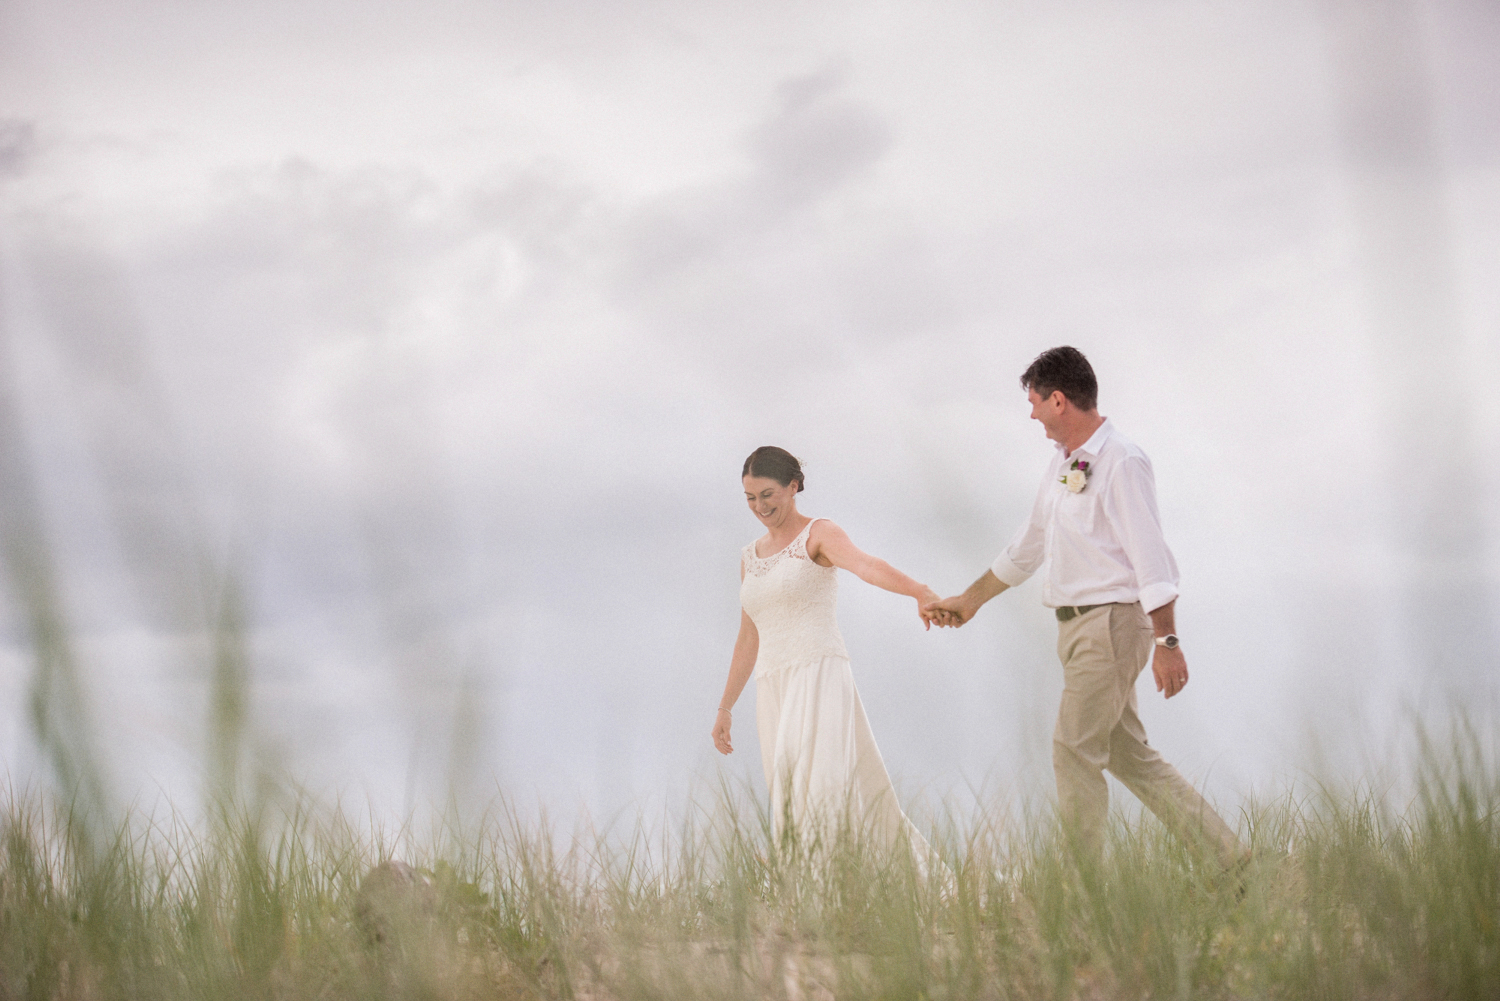 Amity Point is a fantastic intimate wedding location